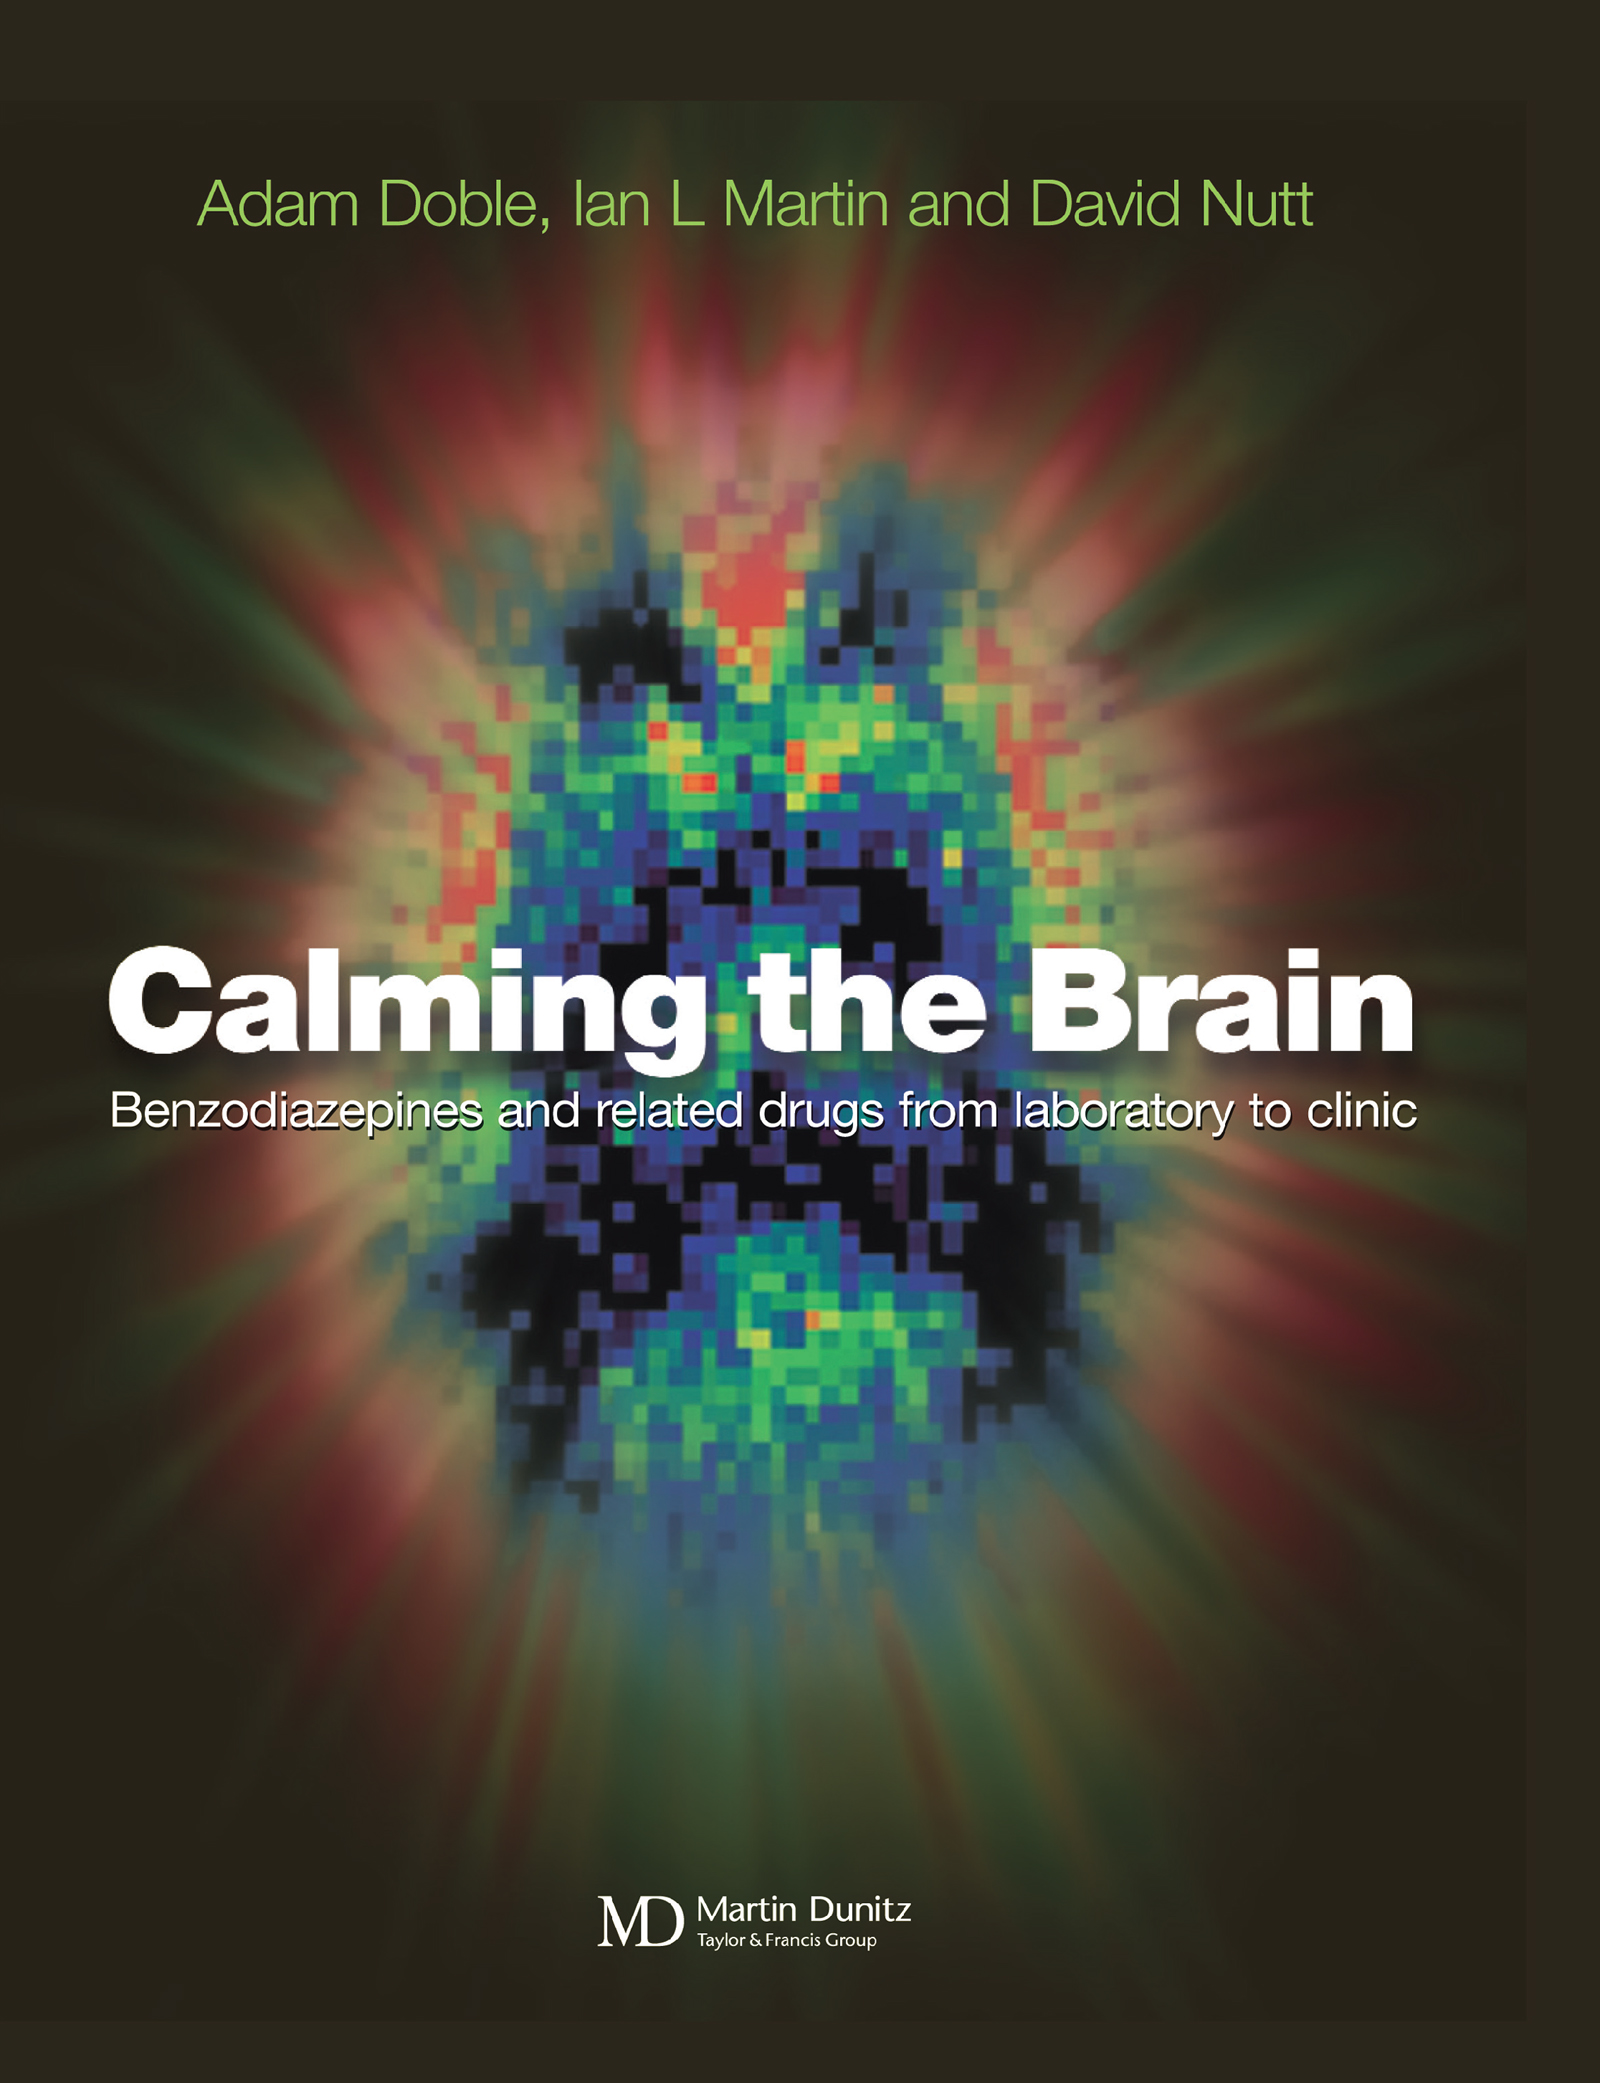 Calming the Brain: Benzodiazepines and related drugs from laboratory to clinic